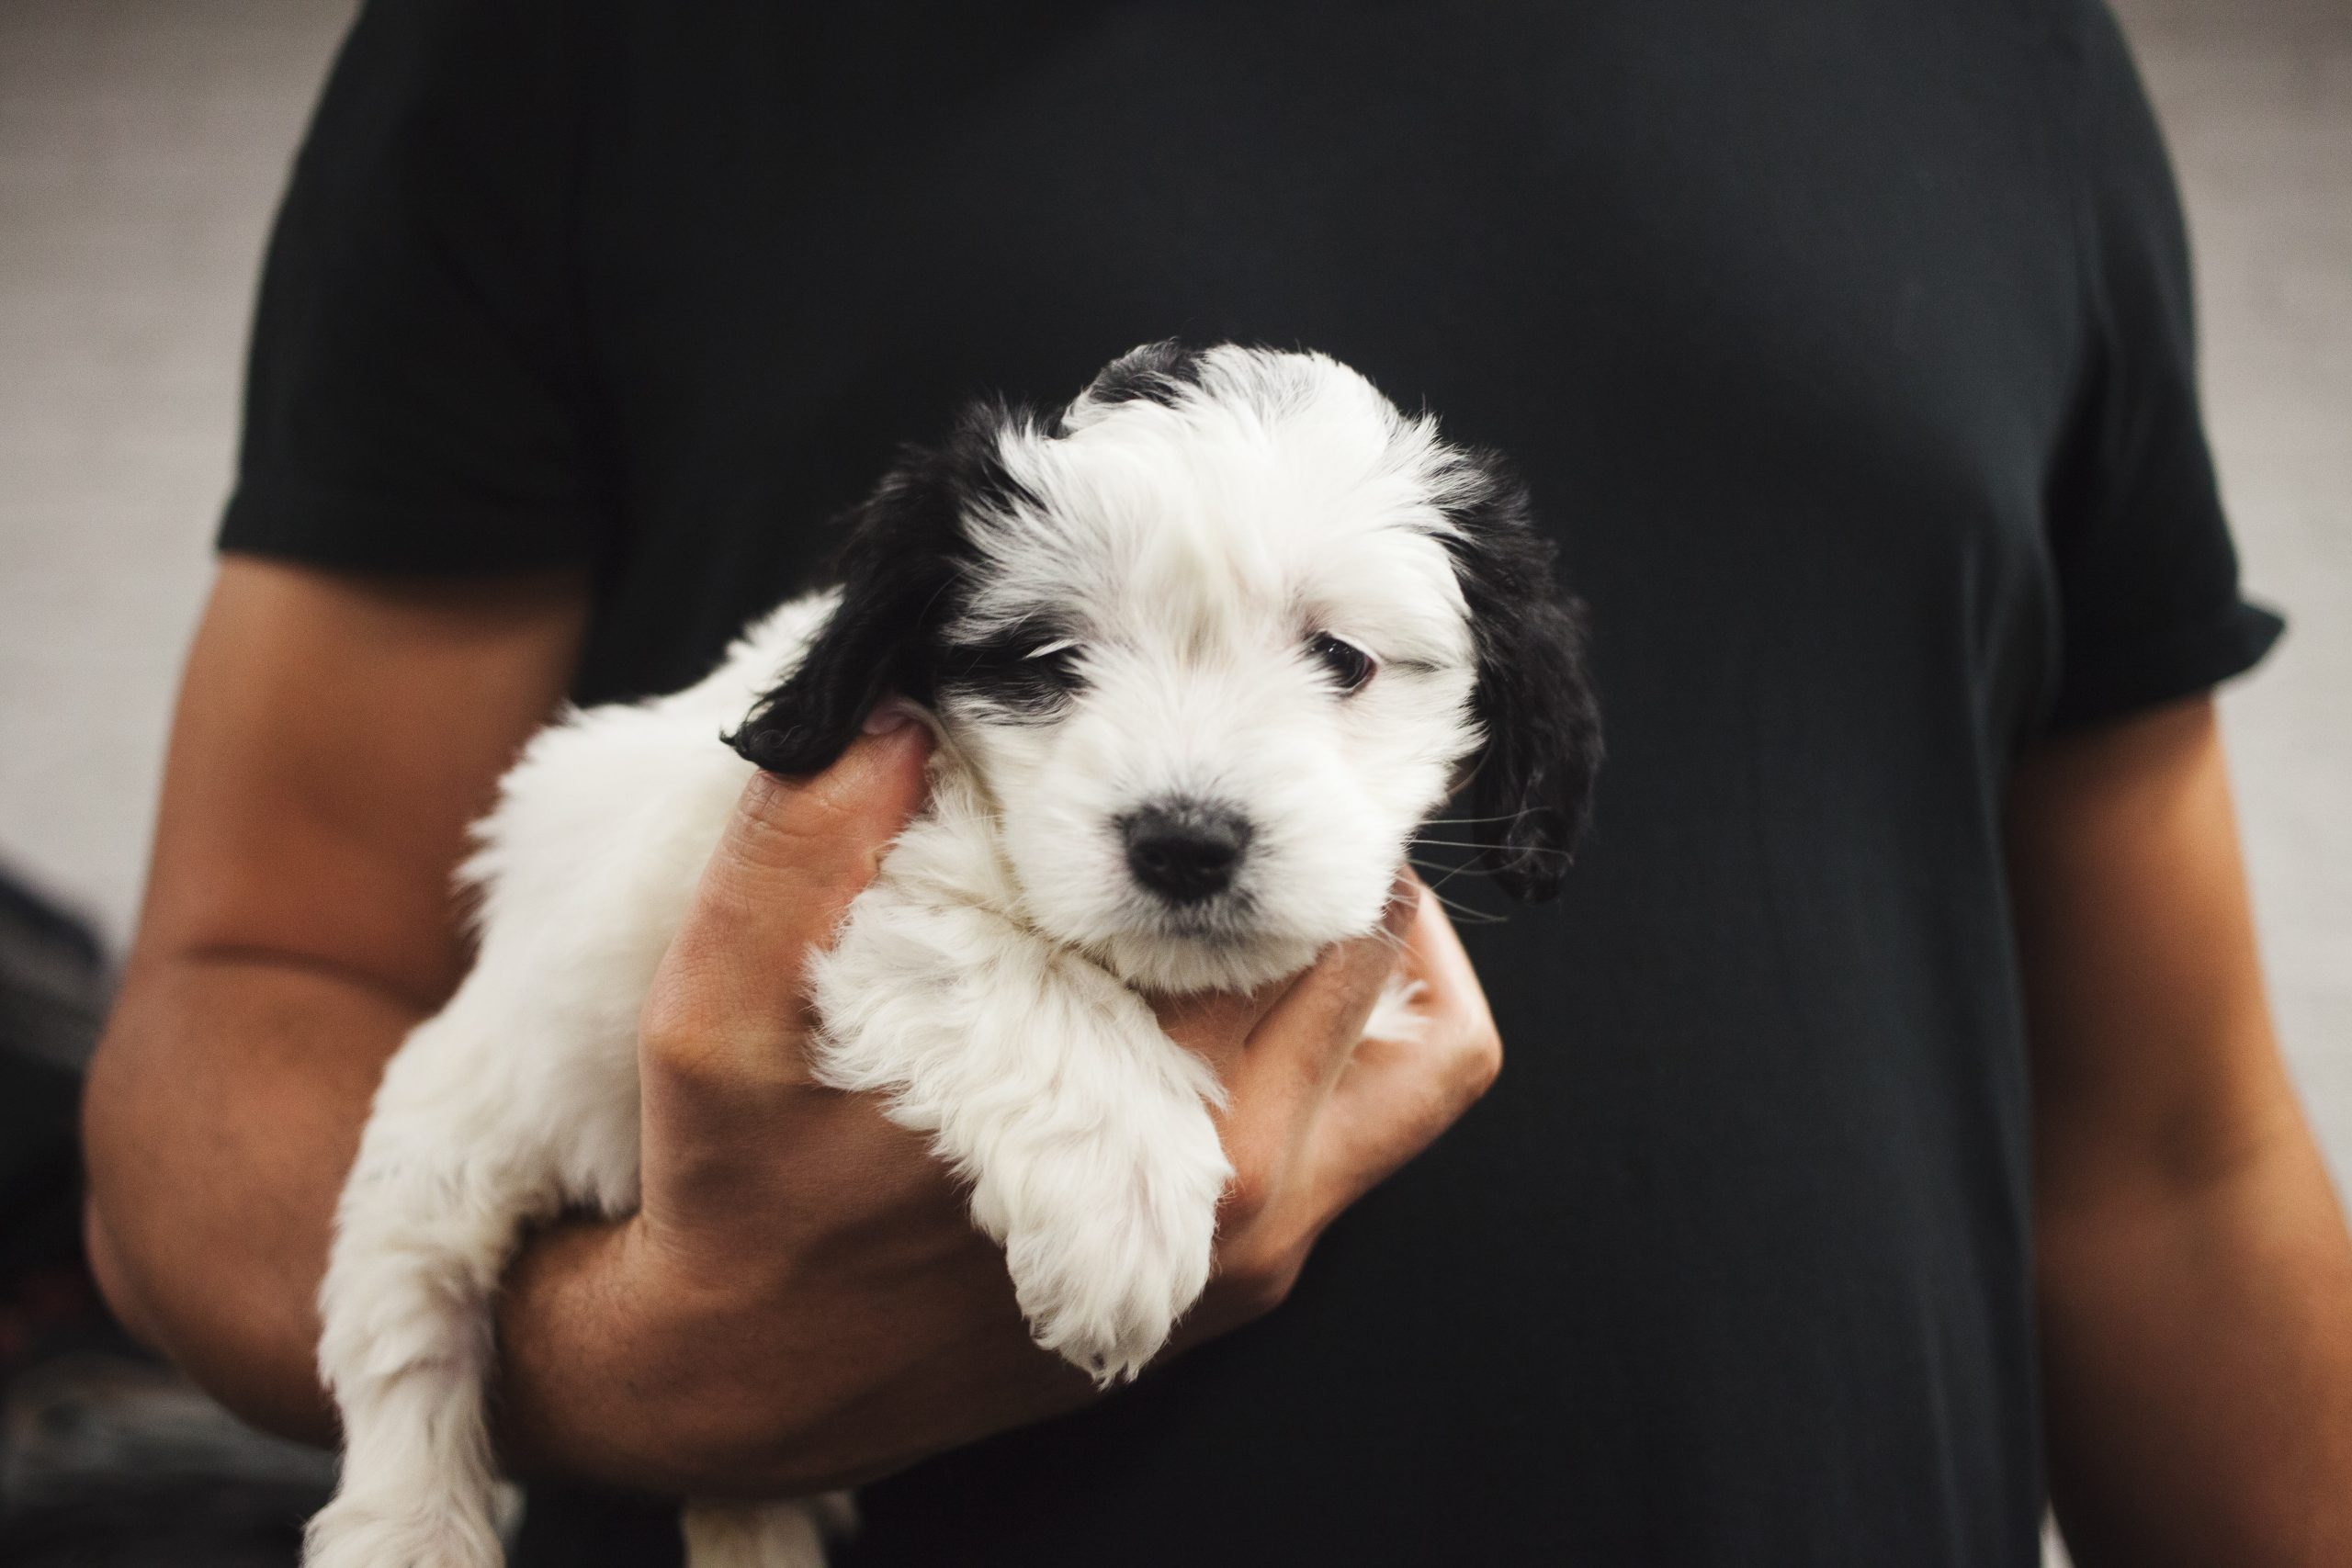 Puppies are cute, but not sexy